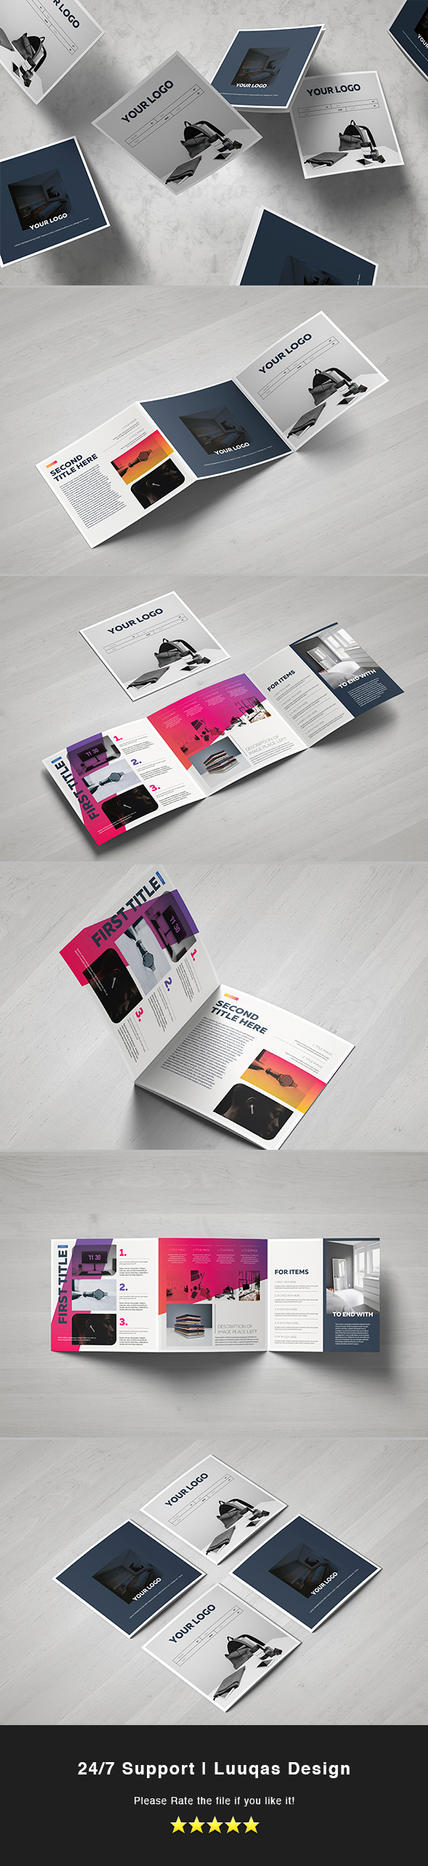 Gradient Square Trifold Template by luuqas